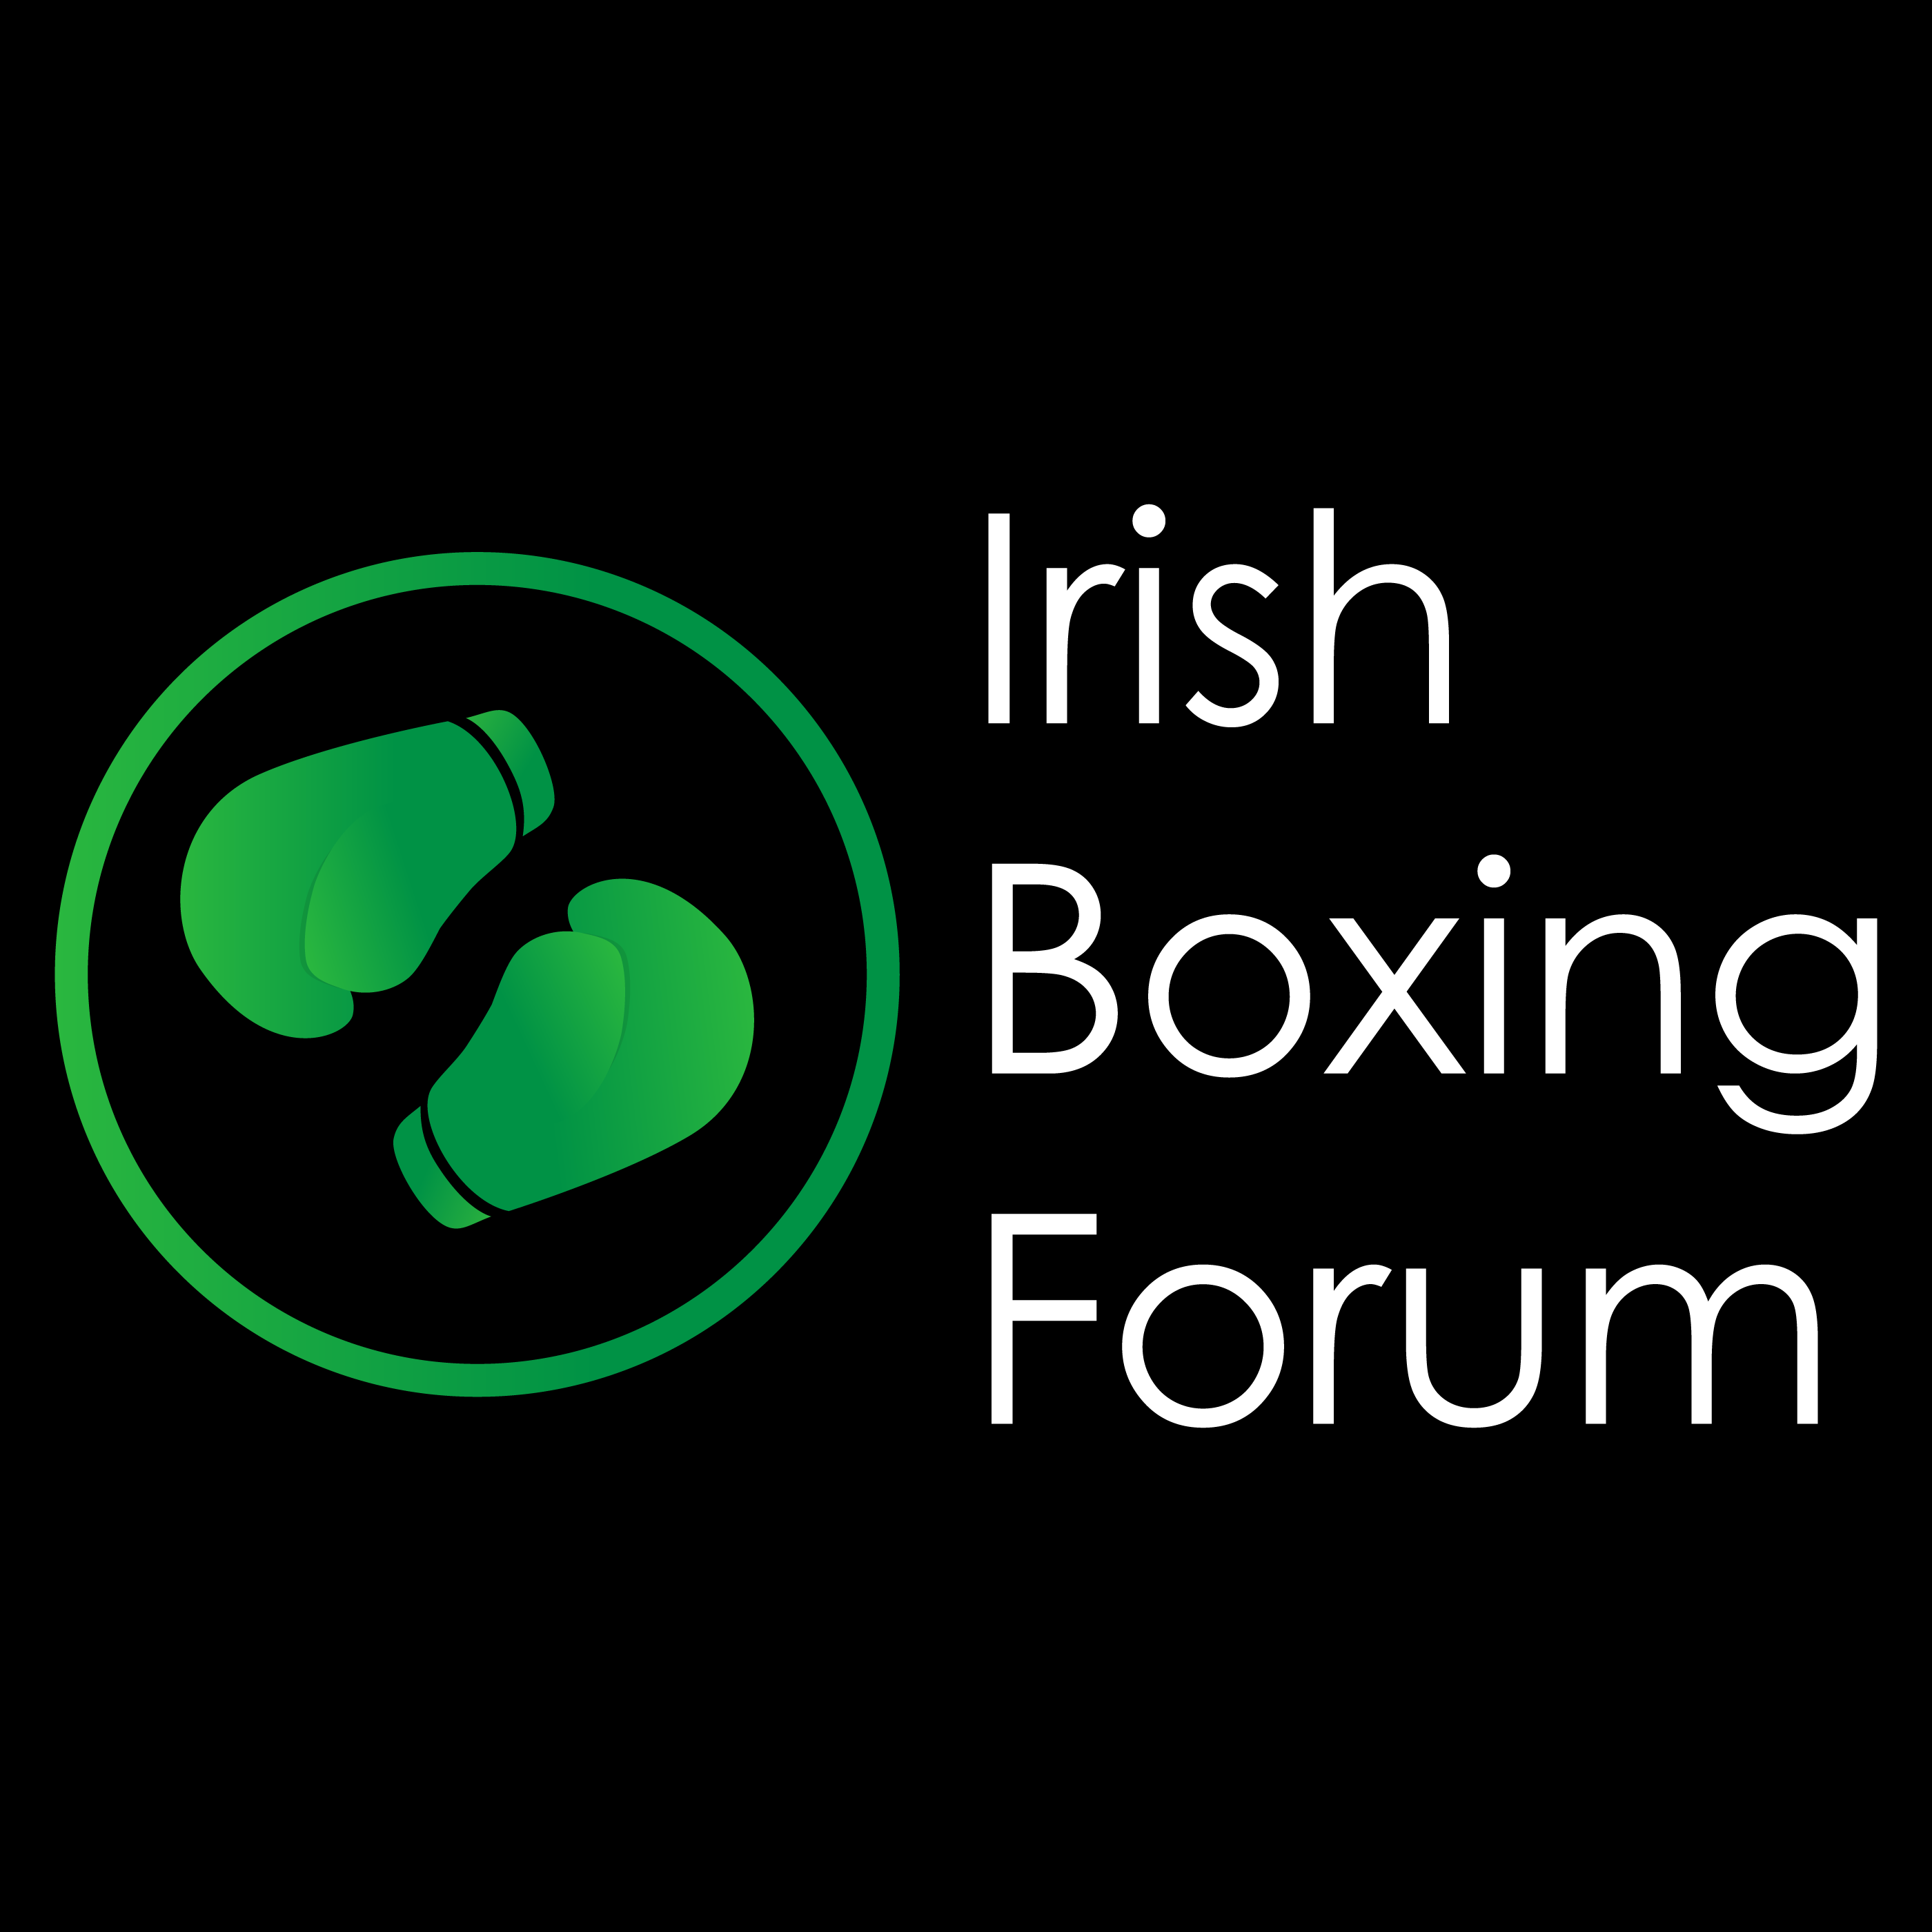 Irish Boxing Forum